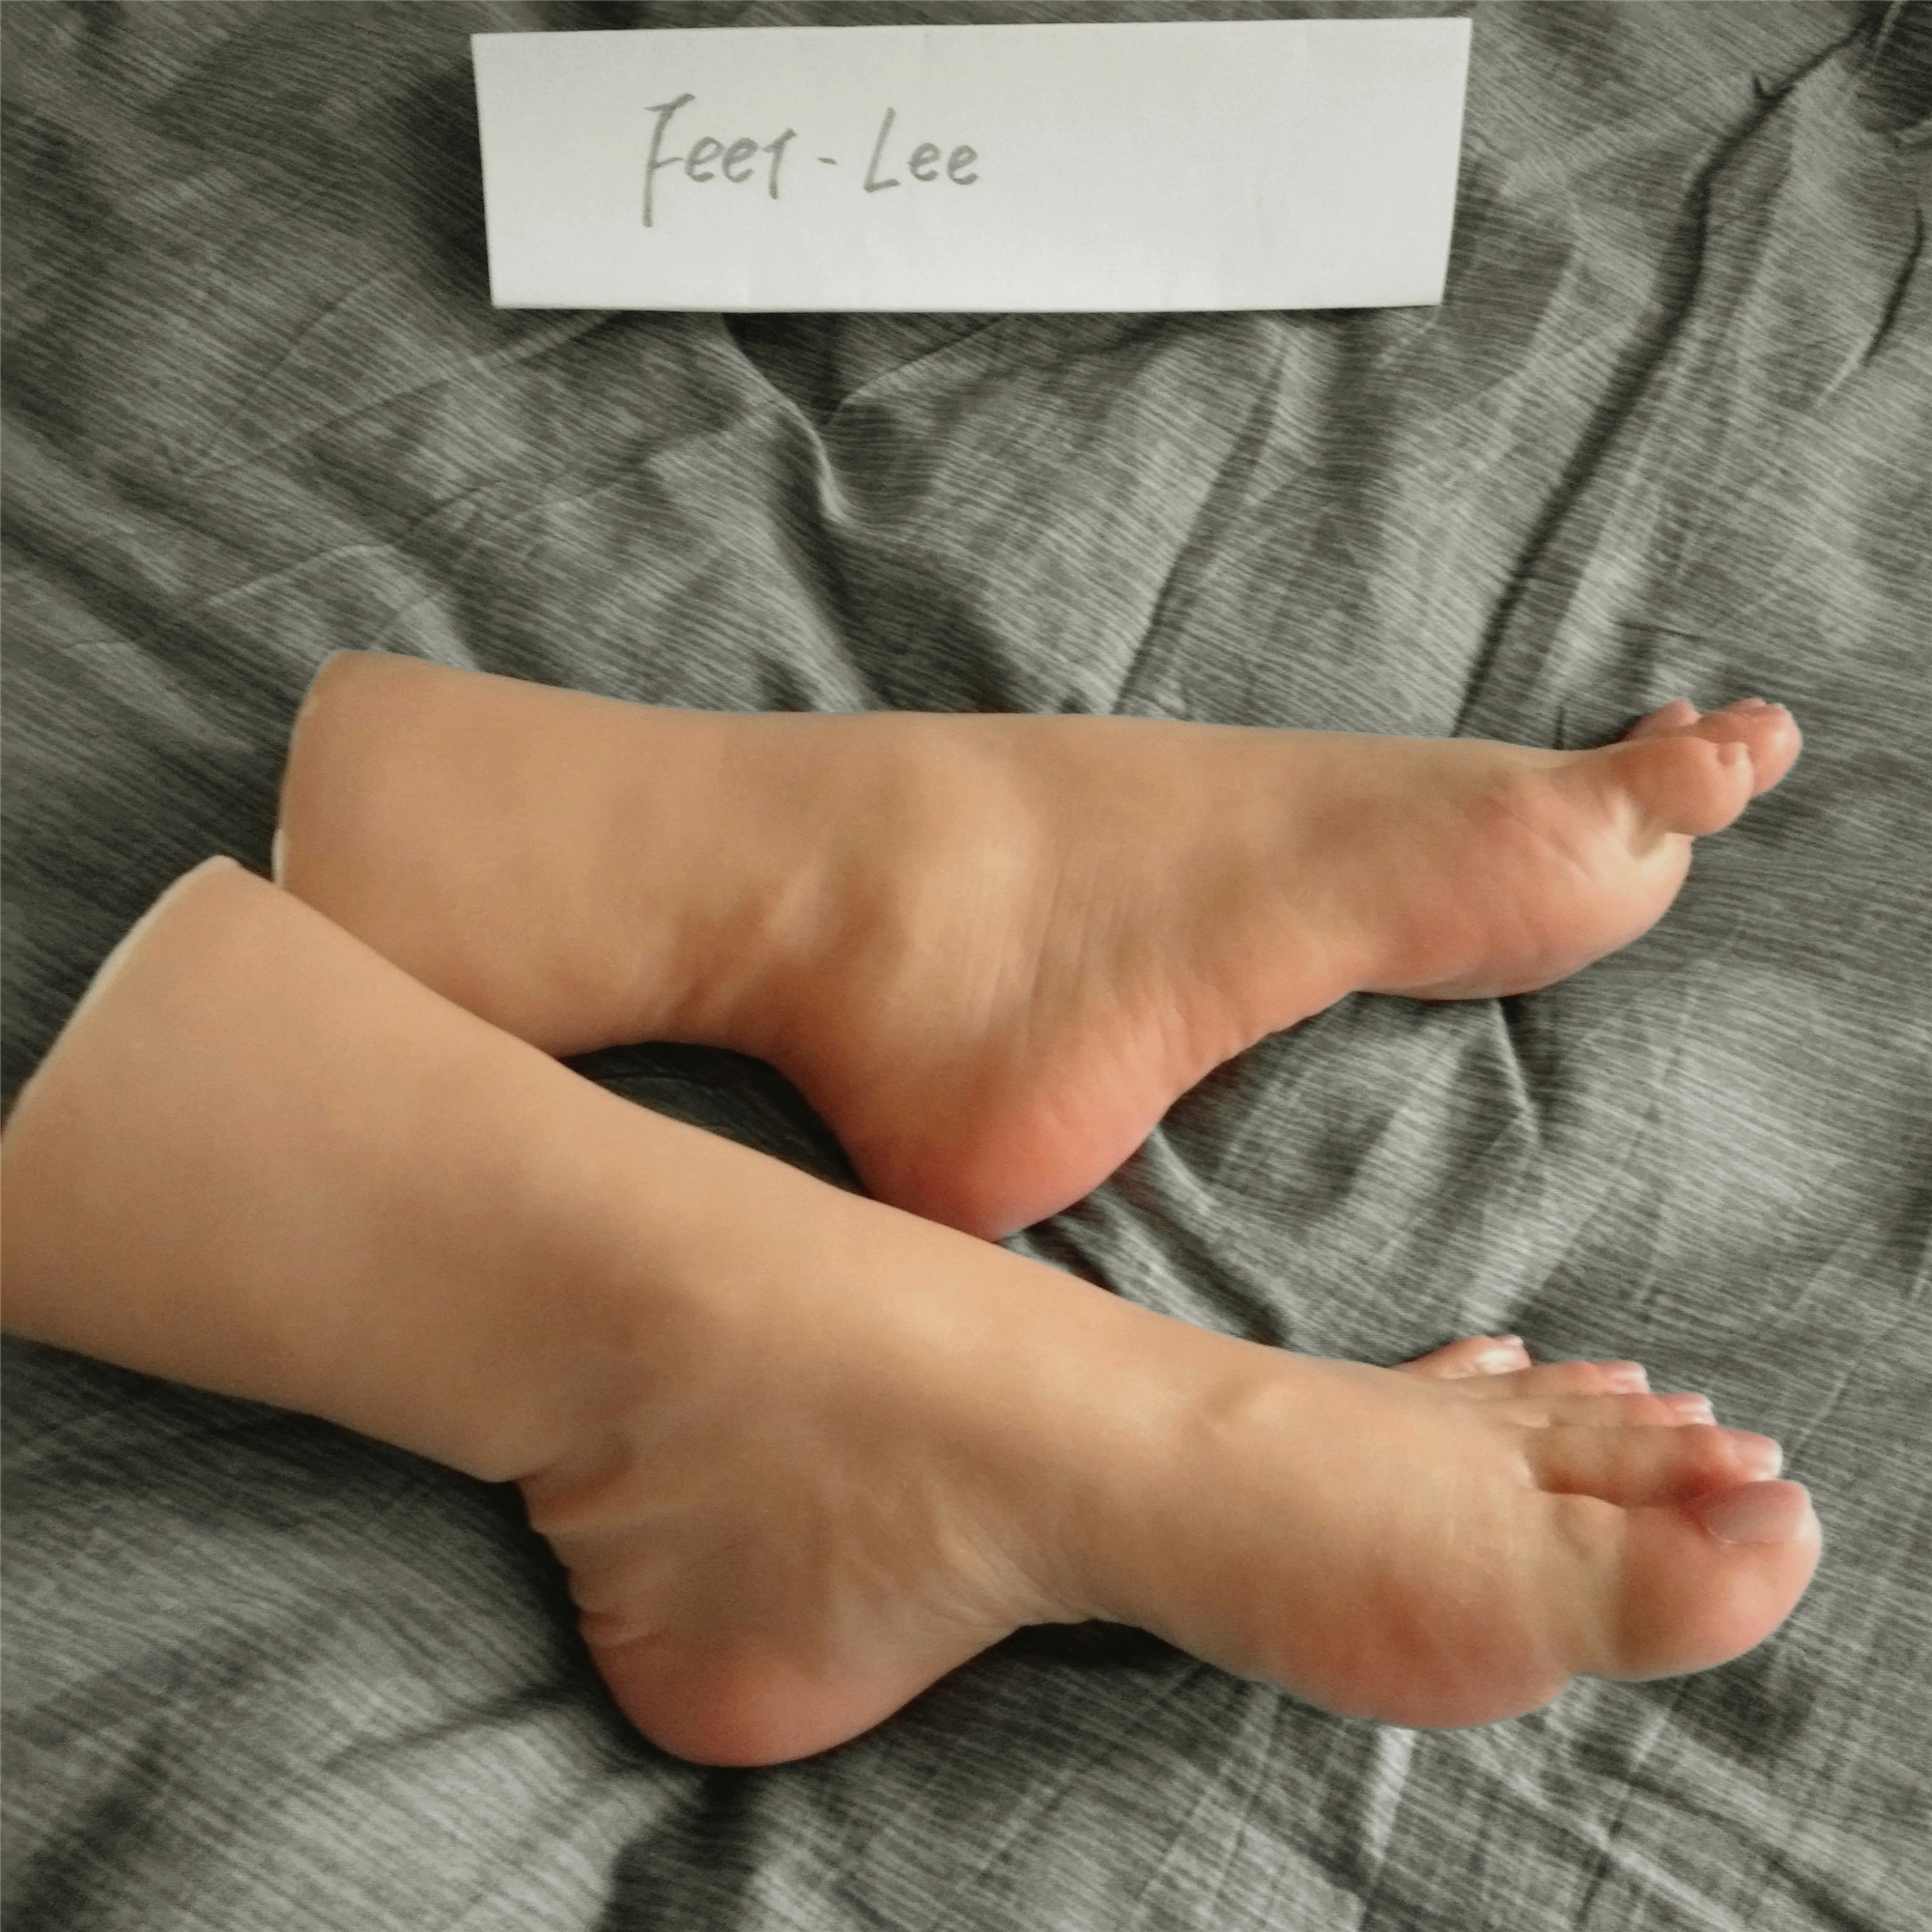 1 Pair Wife's Feet Angry Foot Model Sex Toys Products For Men Realistic Pussy Dolls